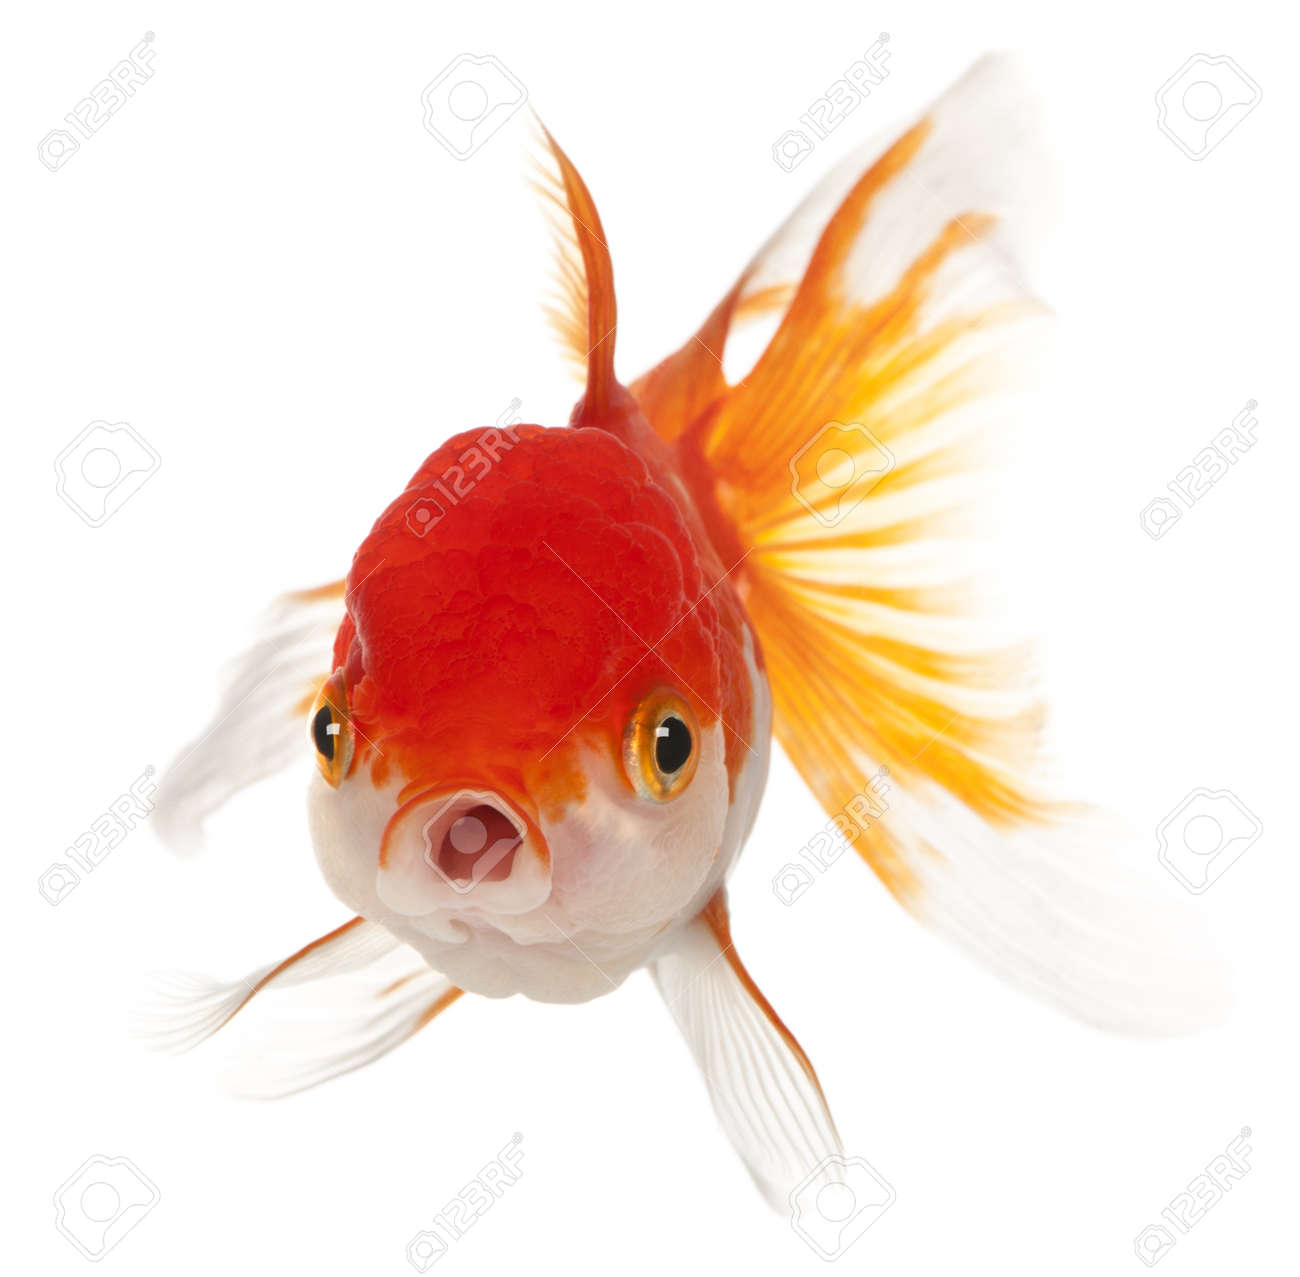 Goldfish Mouth Stock Photos. Royalty Free Goldfish Mouth Images